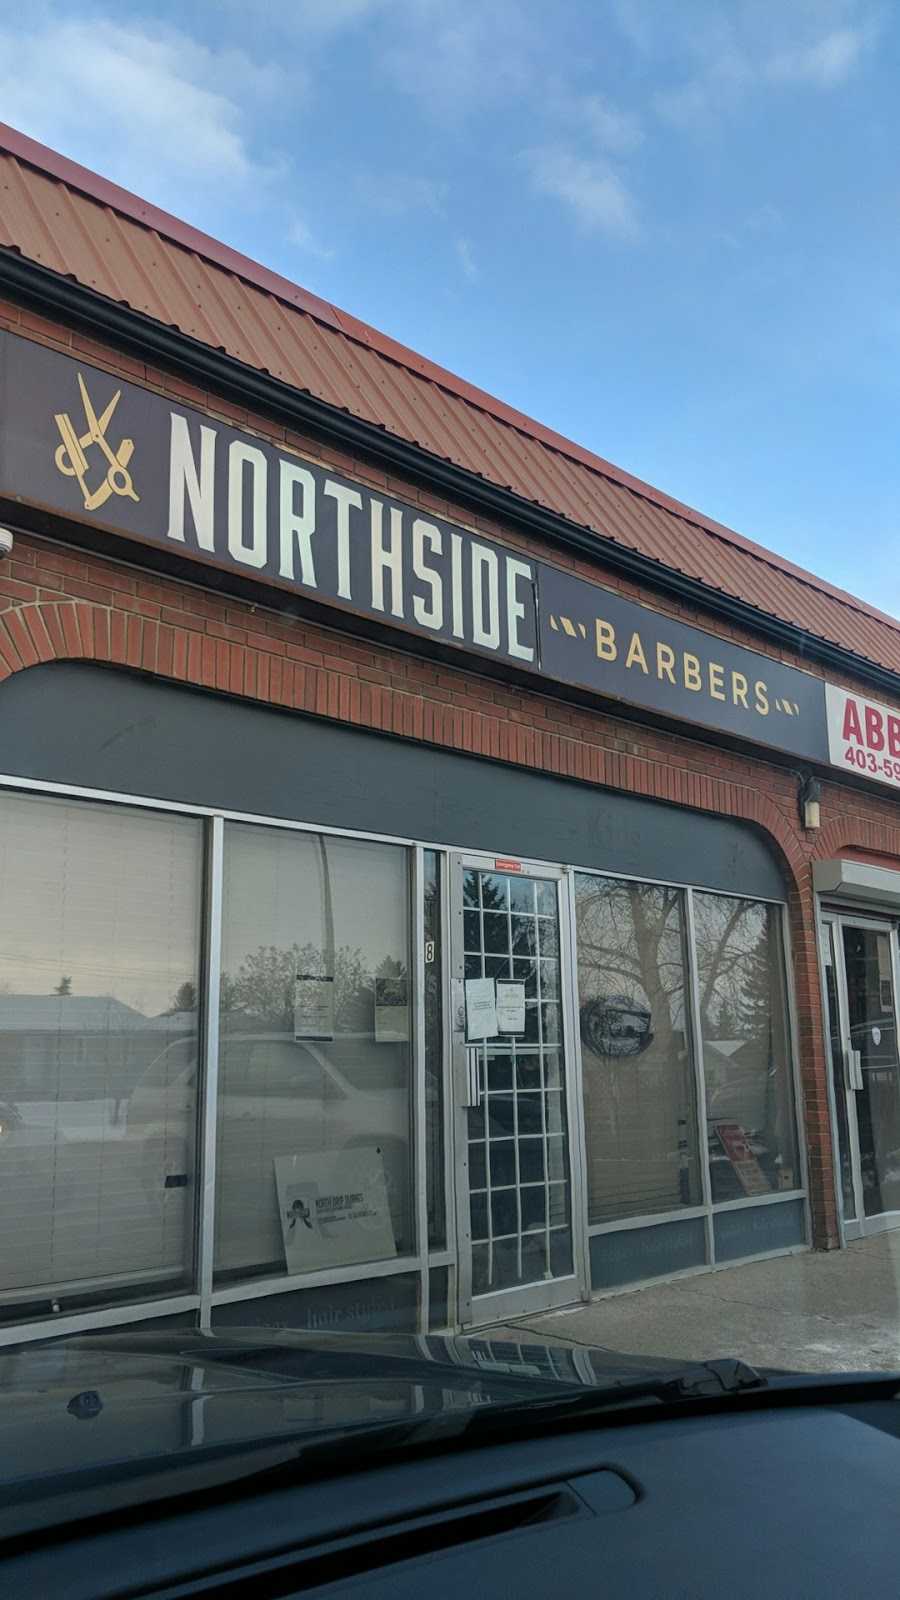 Northside Barbers & Blades   hair care   5008 Whitehorn Dr NE, Calgary, AB T1Y 1V1, Canada   4034523630 OR +1 403-452-3630